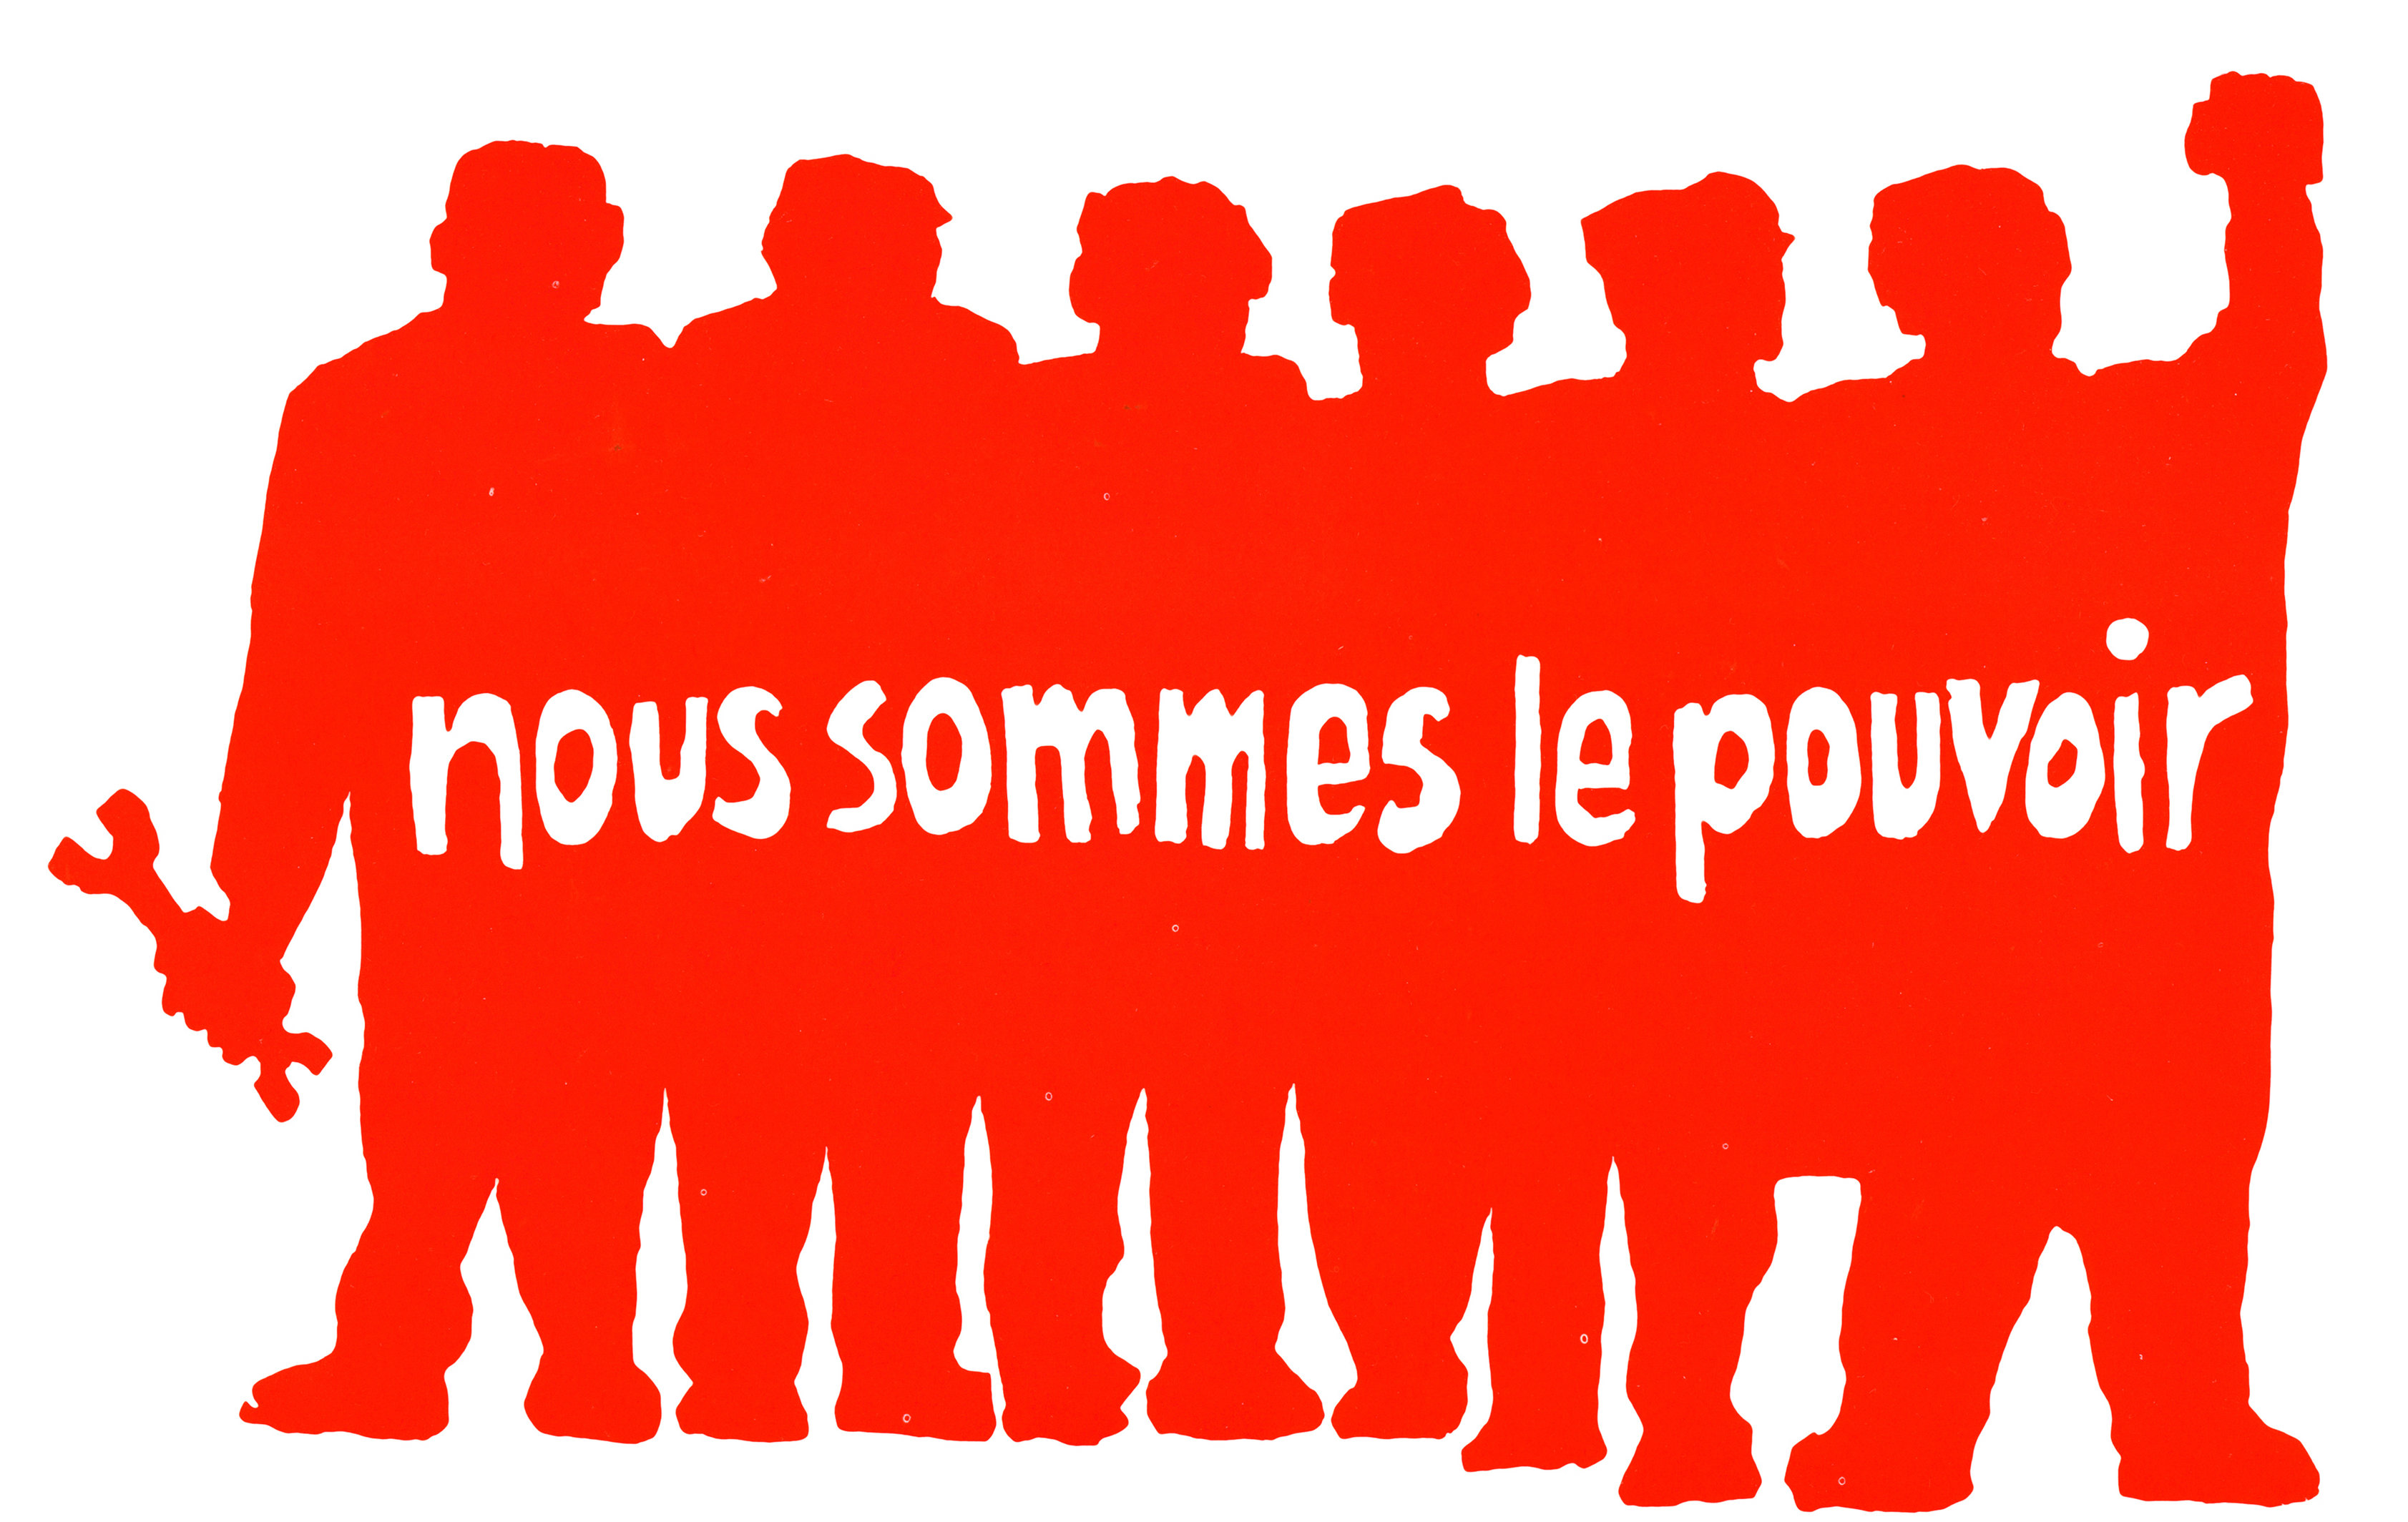 'We are the power' [image provided by Atelier Populaire]